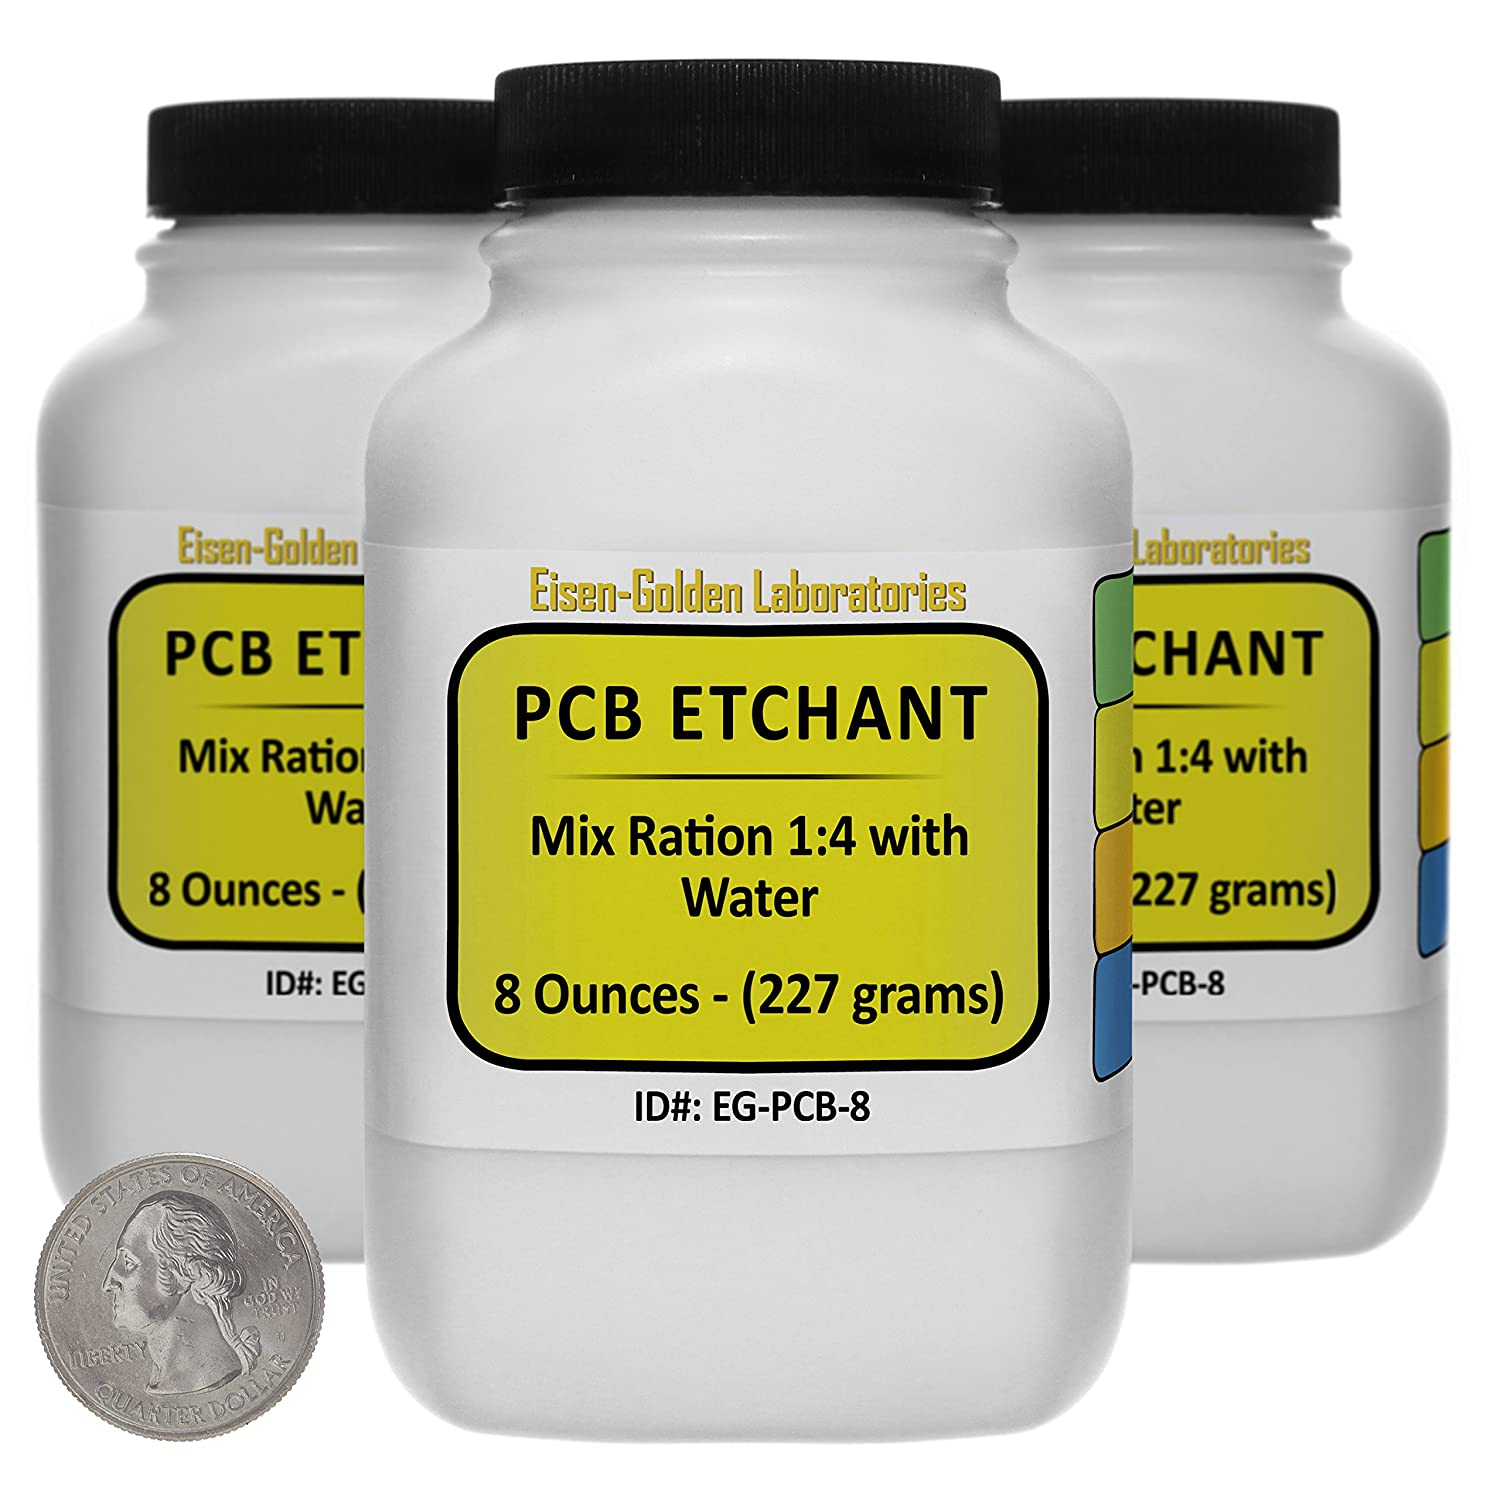 Printed Circuit Board Etchant [PCB] Dry Powder 1.5 Lb in Three Space-Saver Bottles USA Eisen-Golden Laboratories EG-PCB-24/3